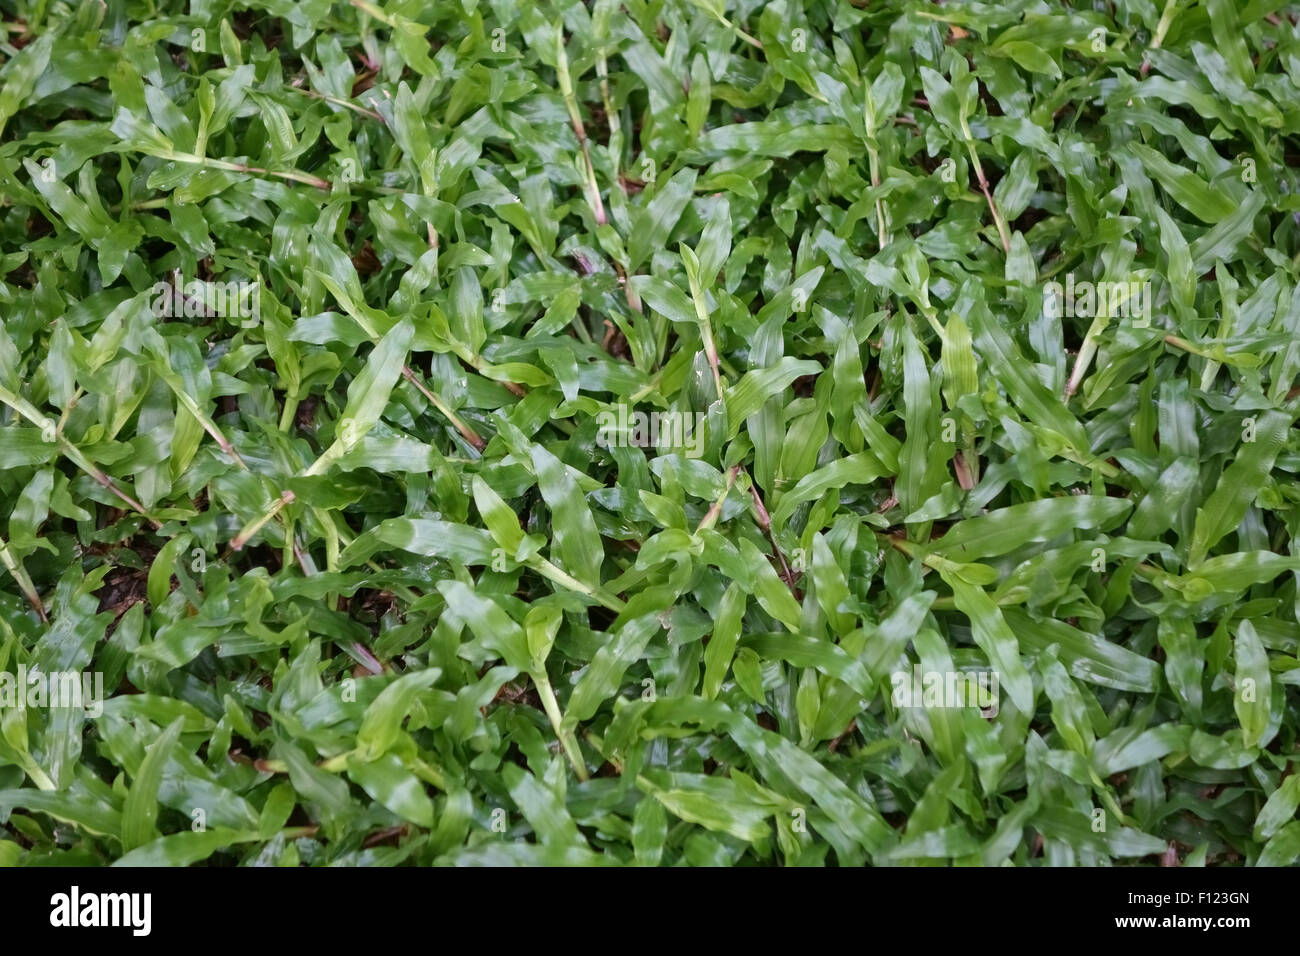 Blanket grass, Axonopus compressus, prostrate plants in a Bangkok lawn, Thailand - Stock Image